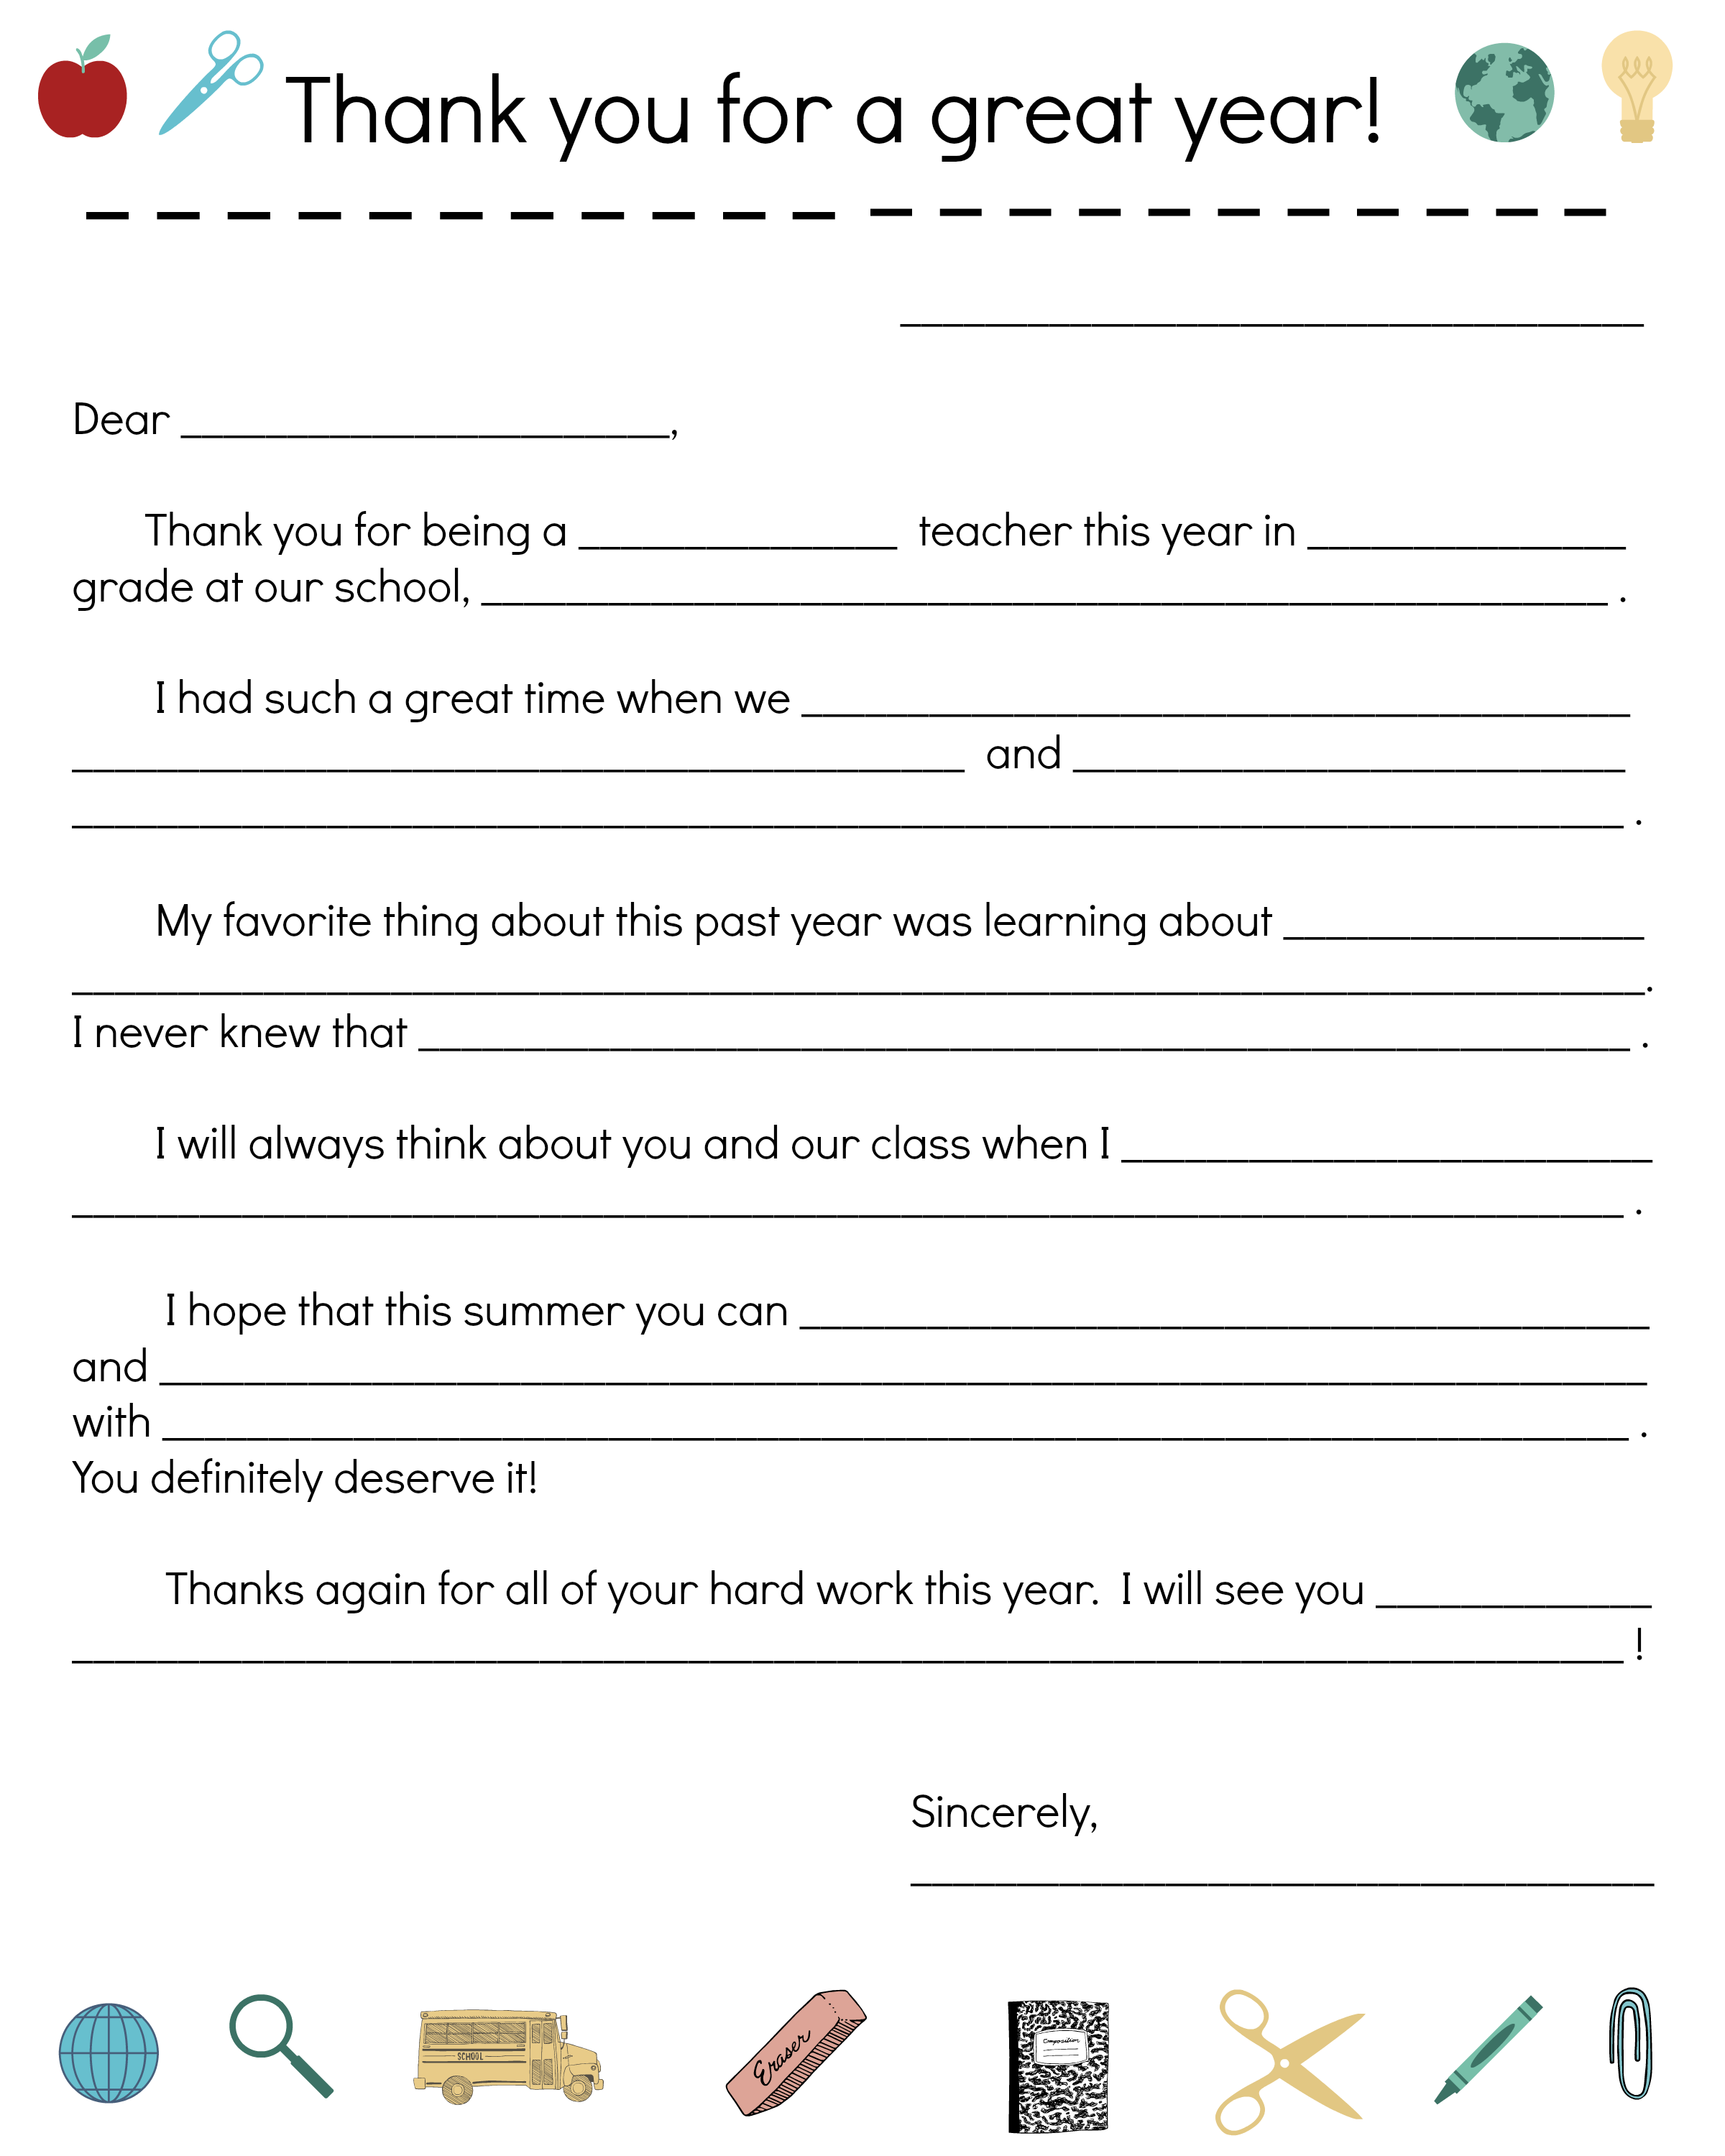 Teacher Appreciation Letter Sample: End-of-Year Teacher Thank You Note